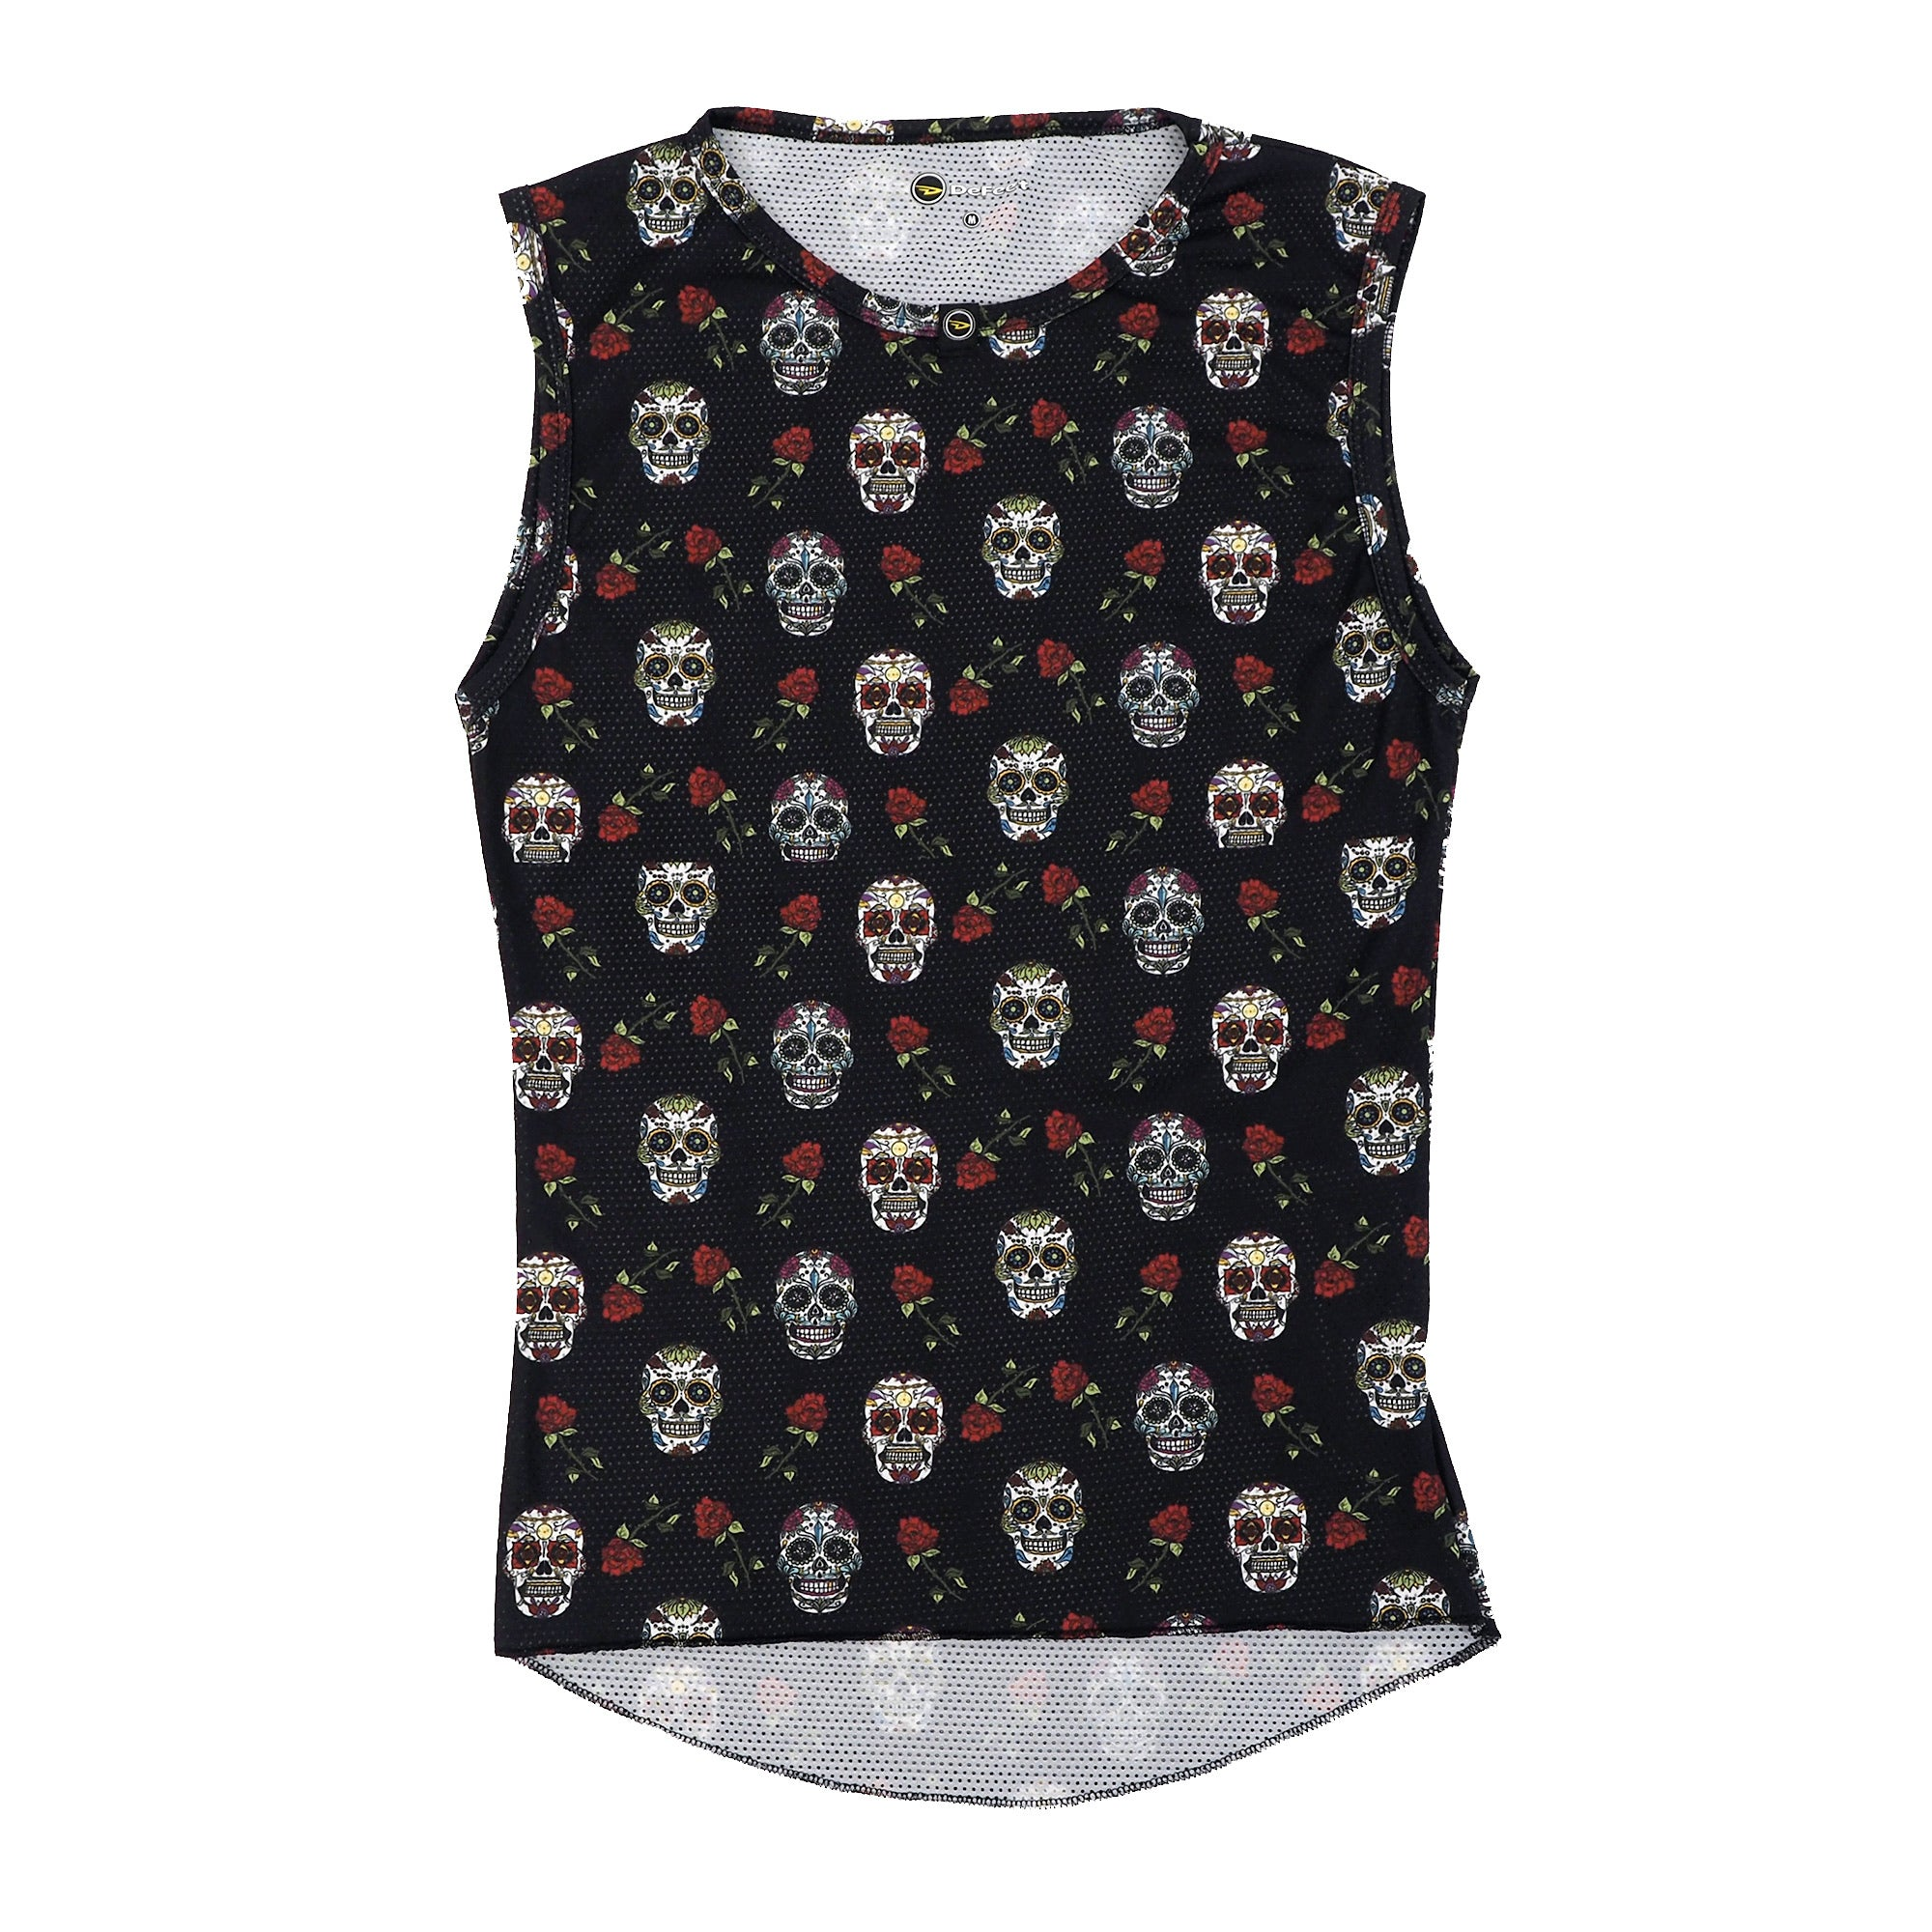 UnDLite Sublimation - Black Sugar Skull